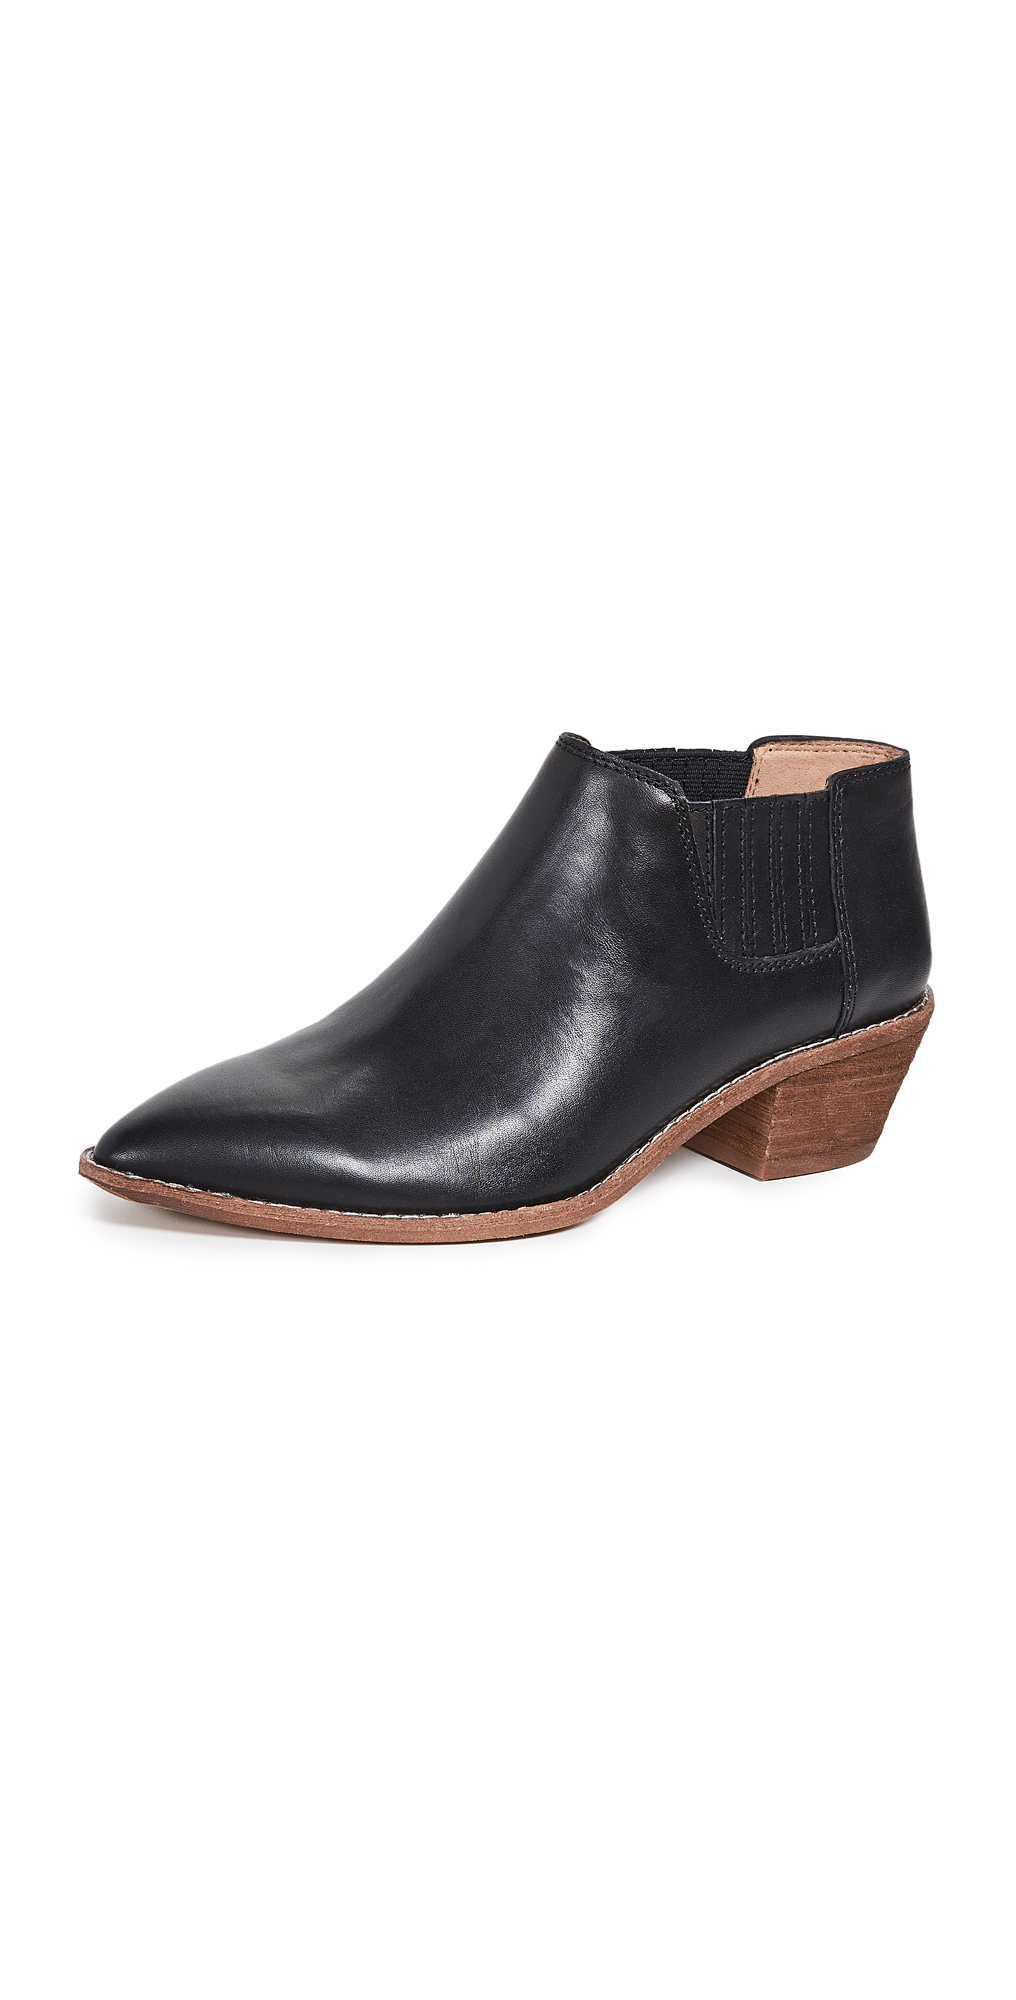 Madewell Low Chelsea Boots | SHOPBOP